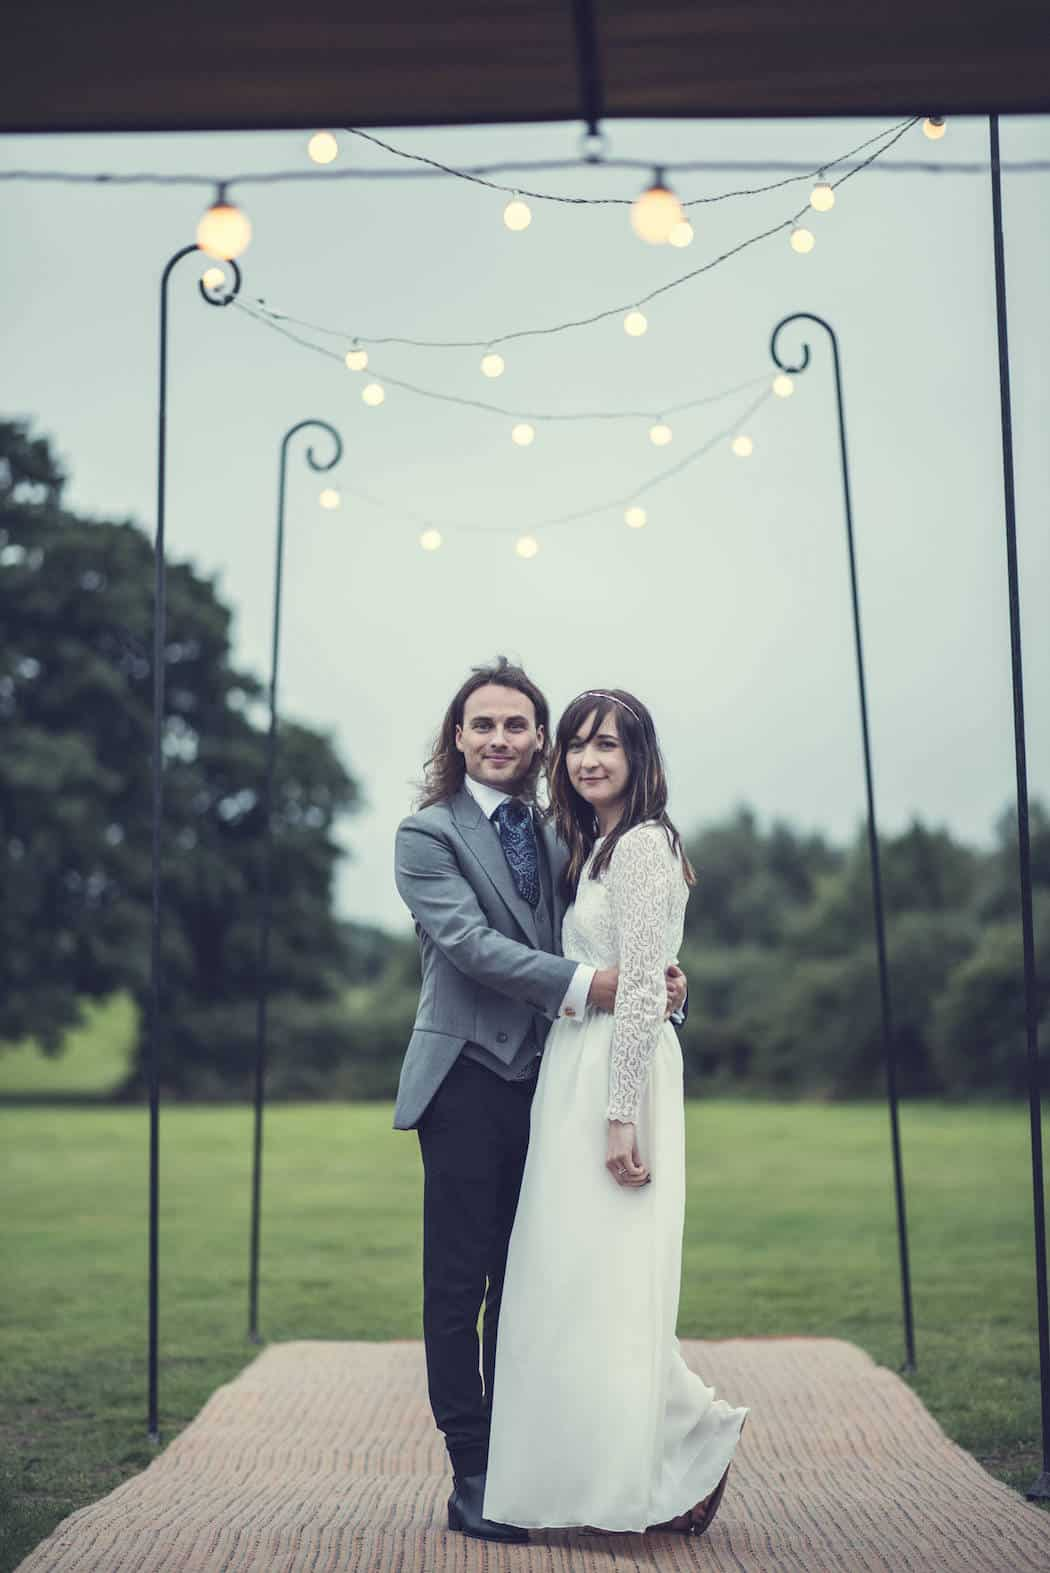 Victoria & Adams Sami Tipi Wedding at Bawdon Lodge Farm, Captured by Thomas & Thomas